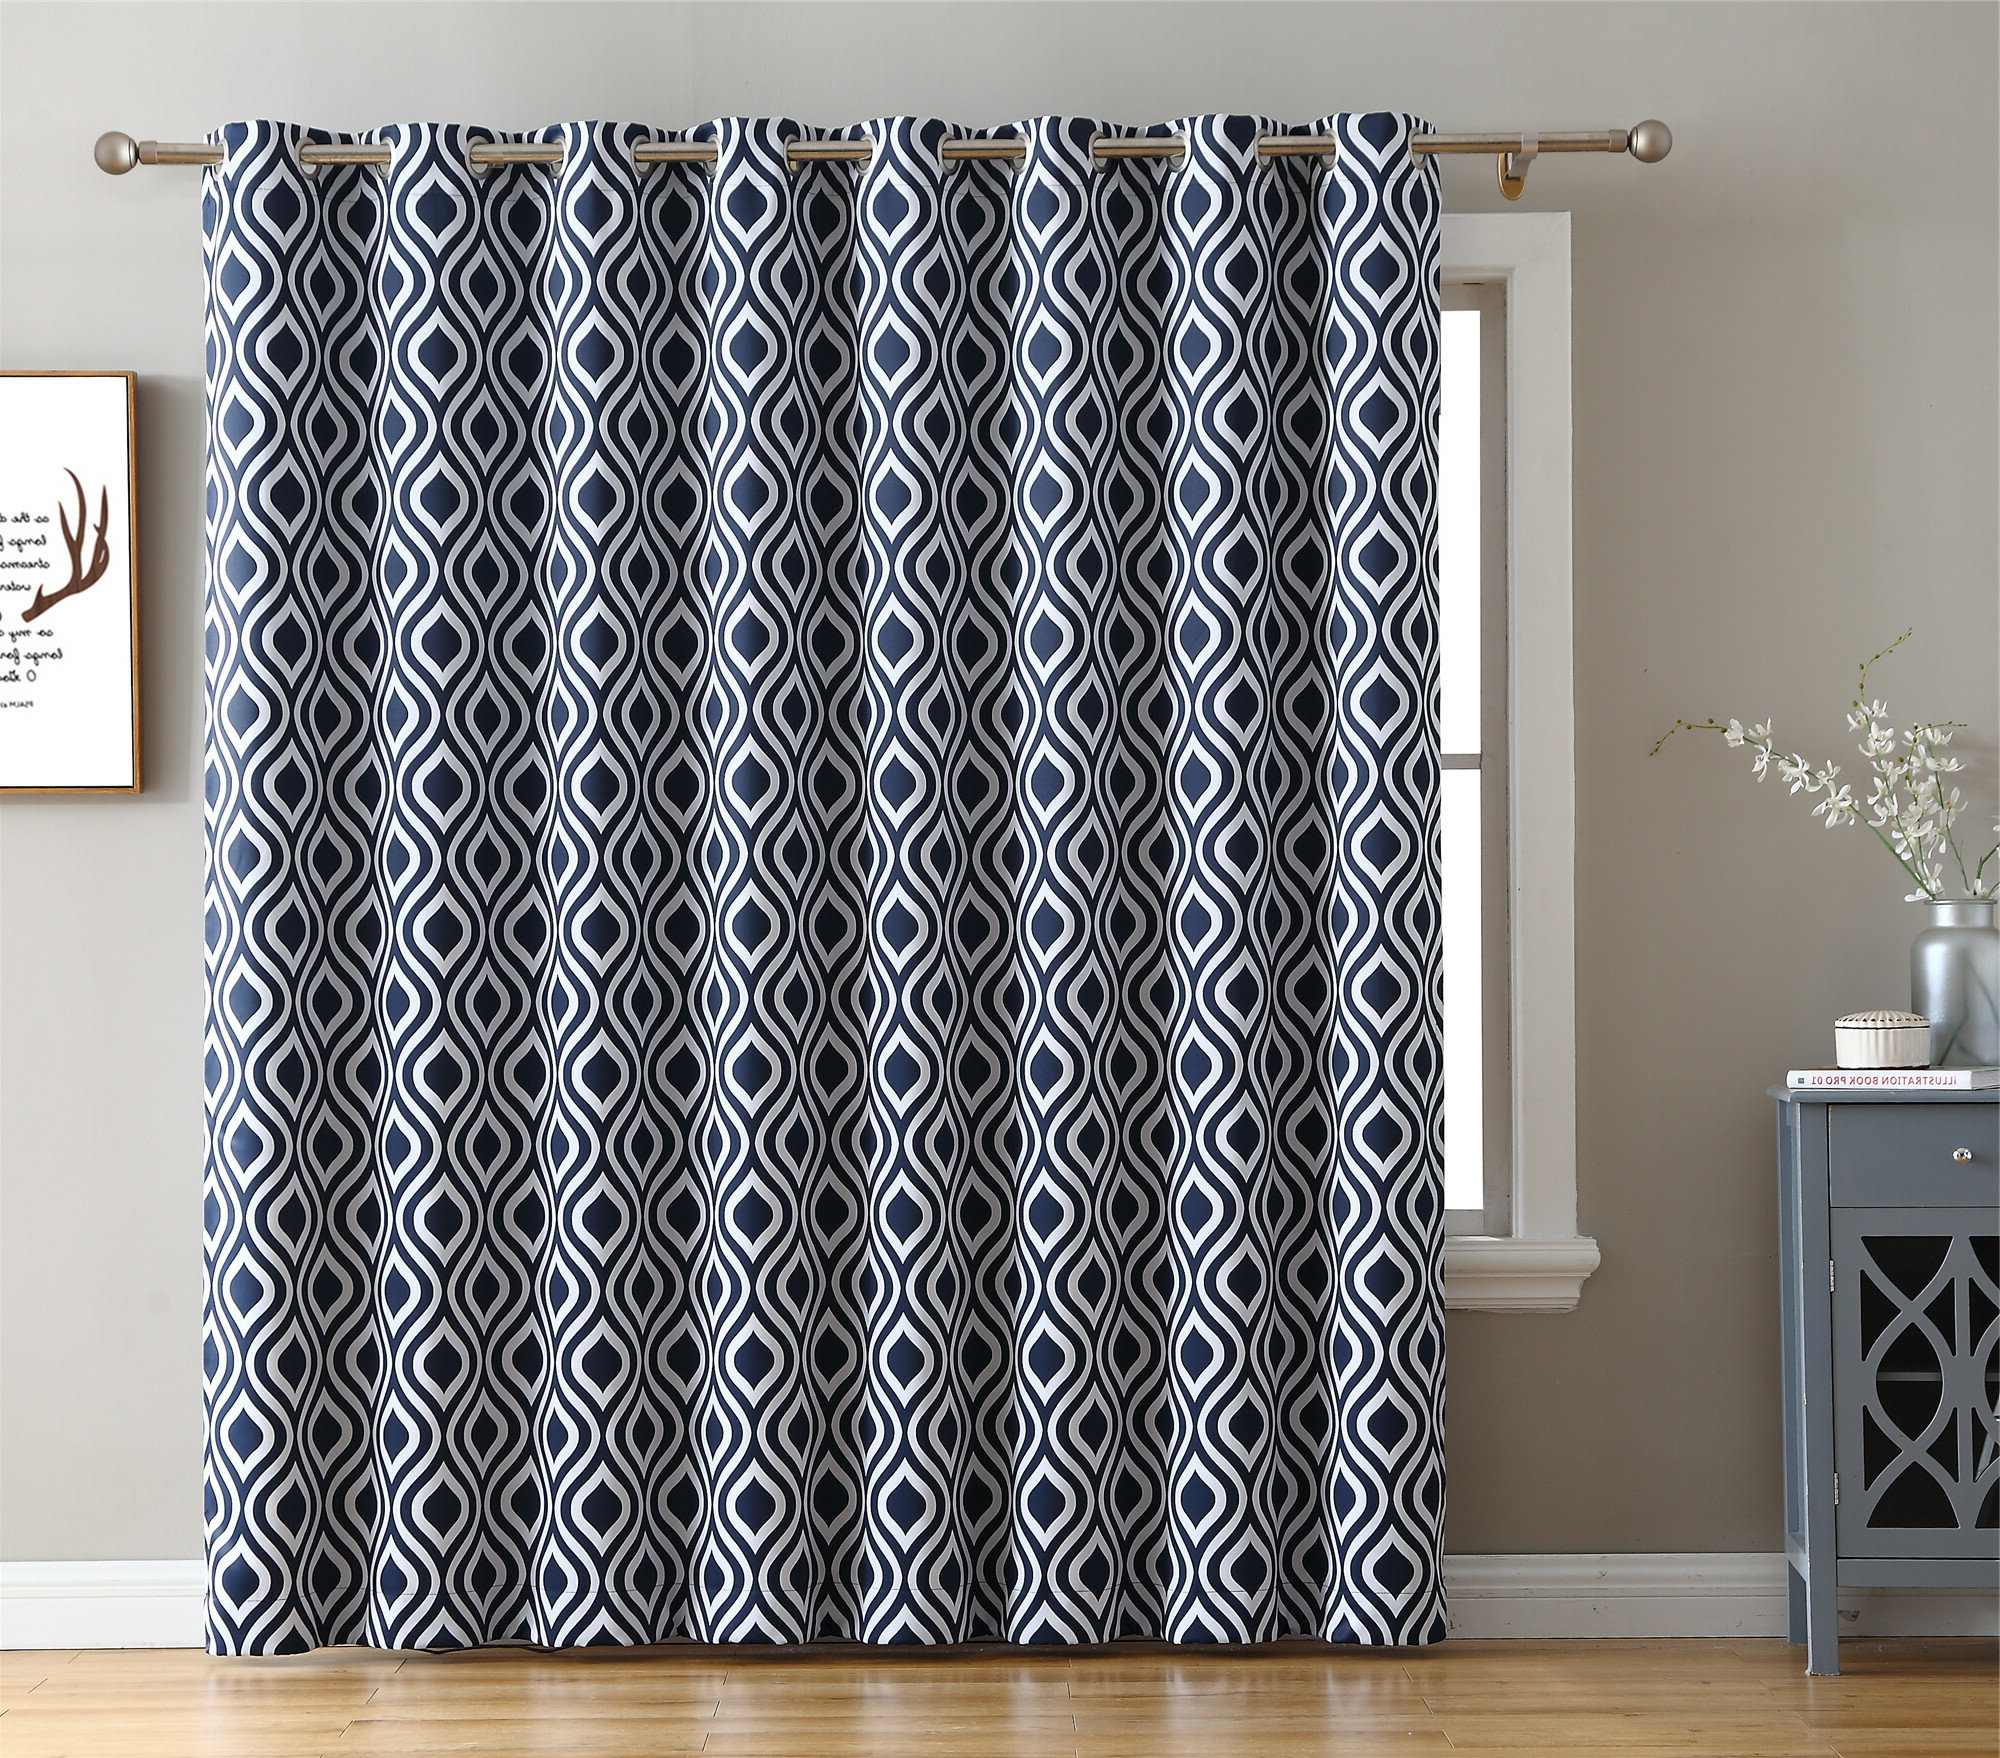 2020 Insulated Cotton Curtain Panel Pairs With Regard To Valarie Geometric Blackout Thermal Grommet Single Curtain Panel (View 20 of 20)